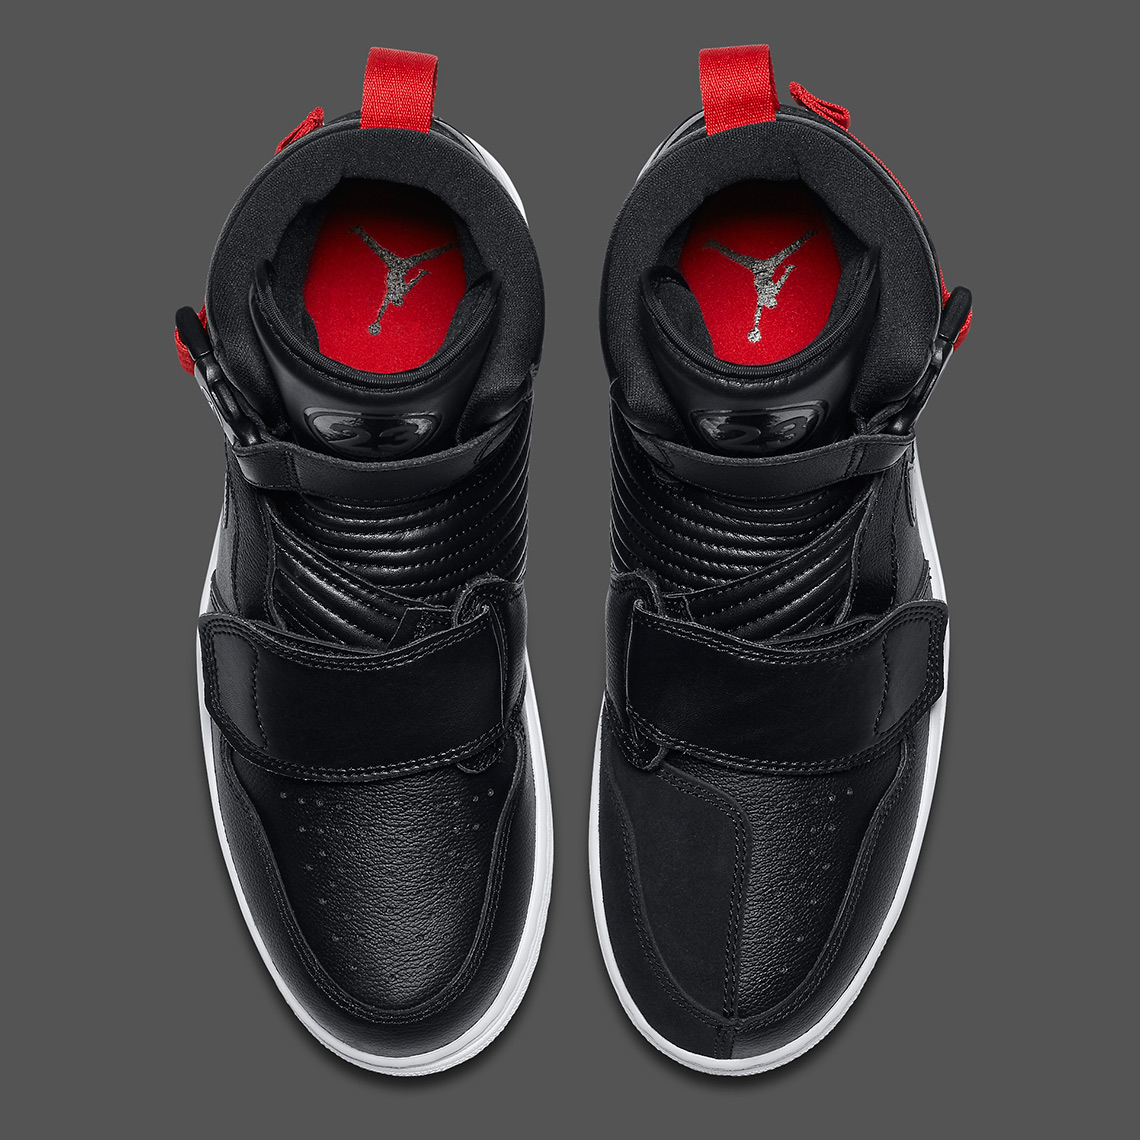 purchase cheap sports shoes new arrive Air Jordan 1 Moto Black Red AT3146-001 | SneakerNews.com